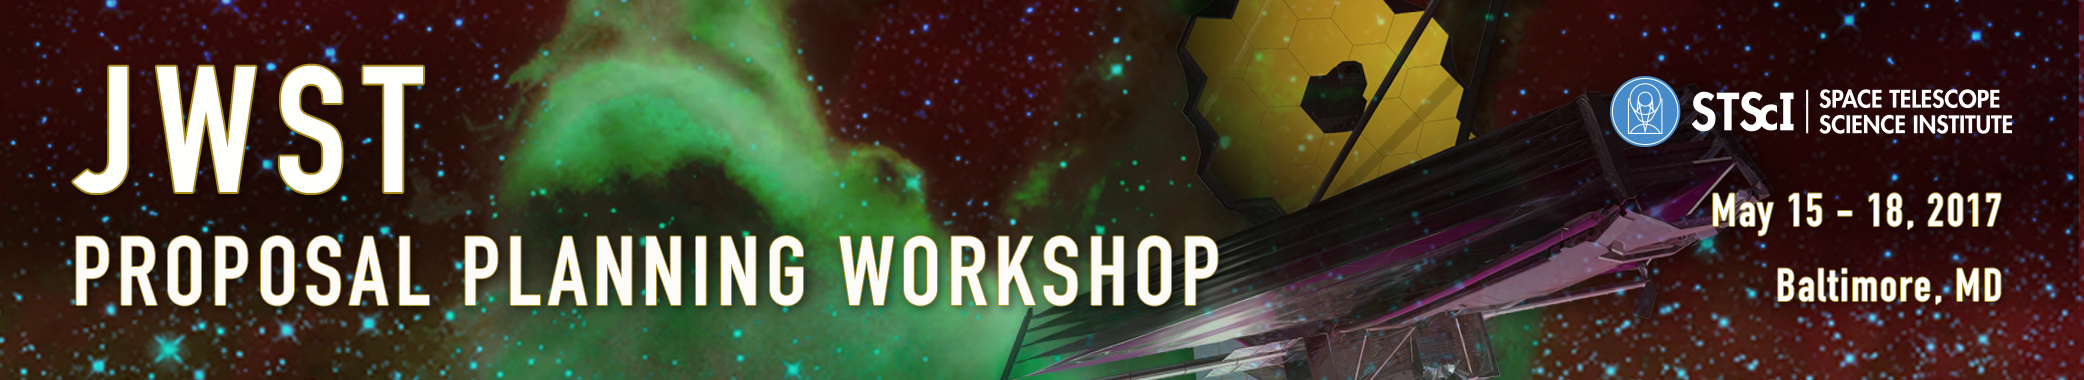 JWST Planning Workshop Agenda Header